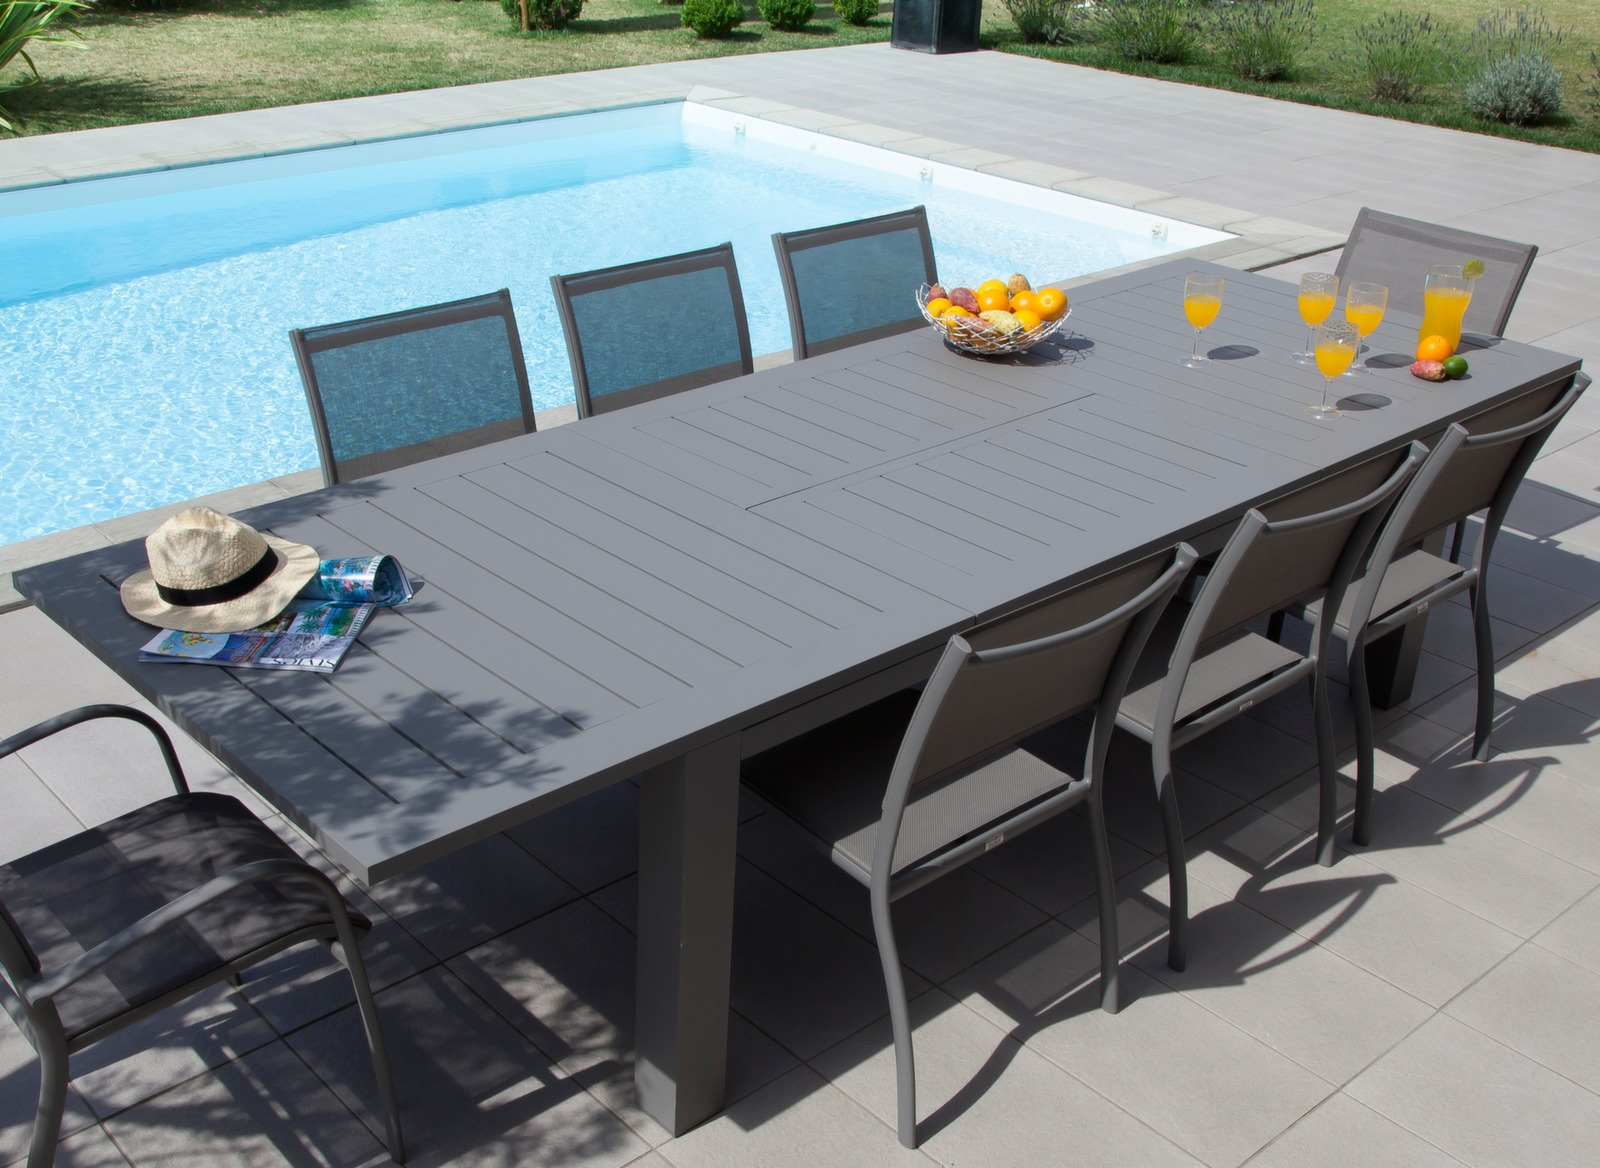 Table de jardin aluminium 12 places aurore oc o proloisirs for Table d exterieur avec rallonge